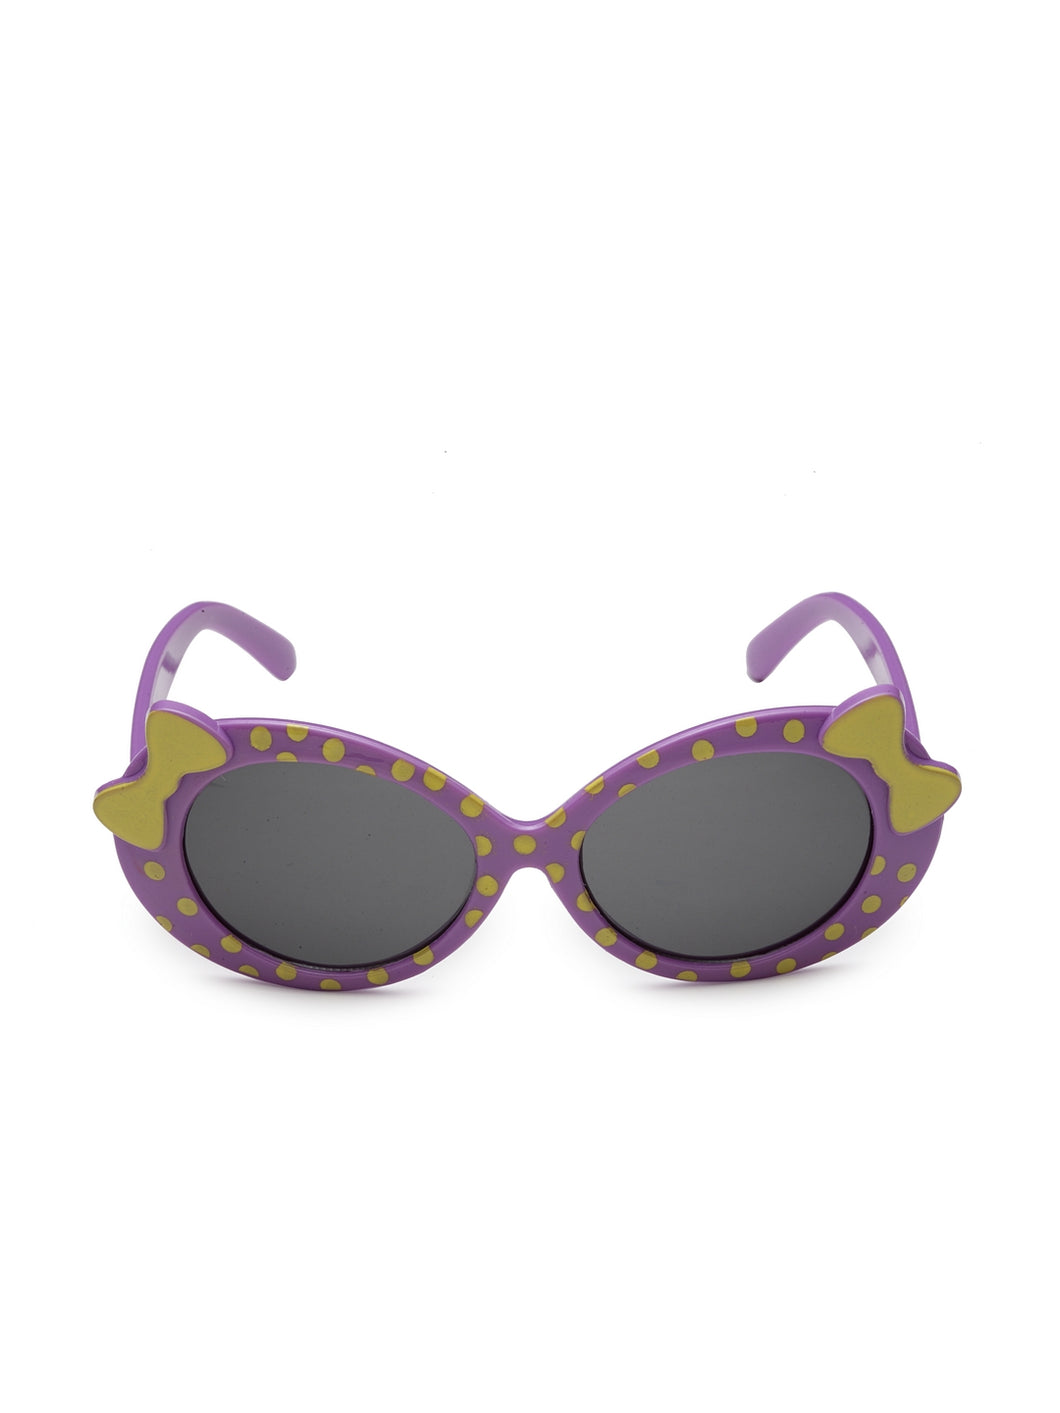 Stol'n Premium Attractive Fashionable UV-Protected Cat Eye Sunglasses - Purple